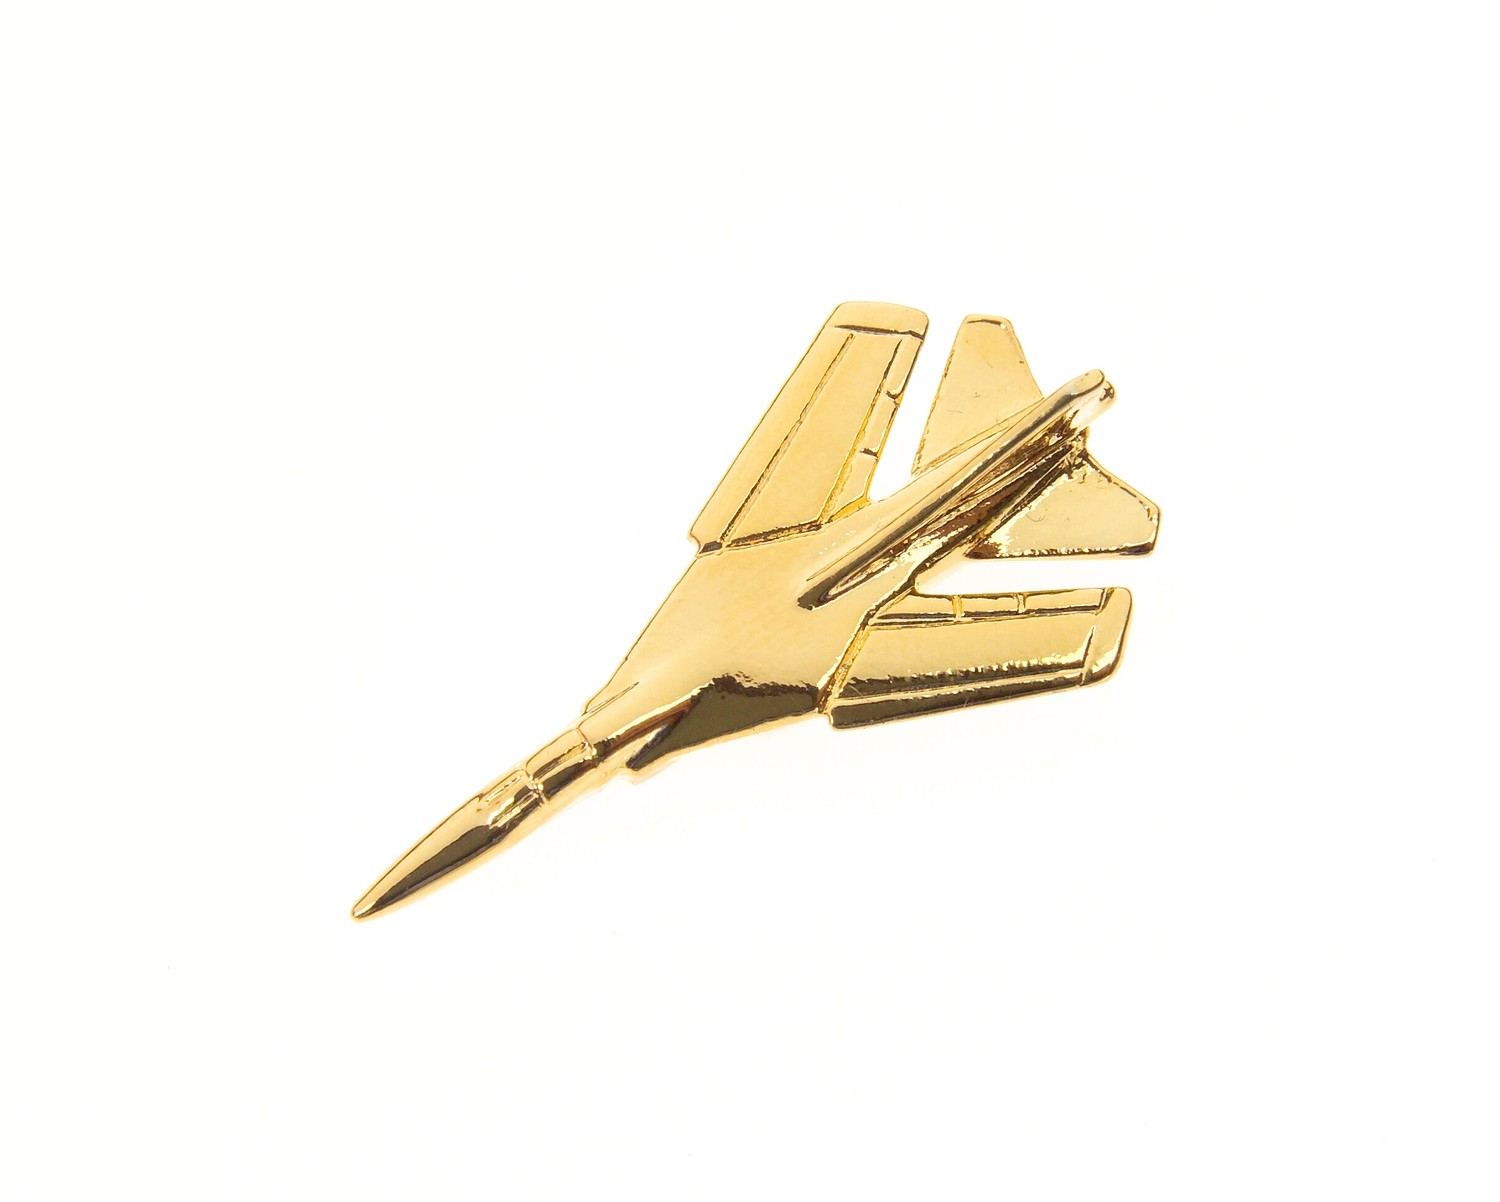 Mig 23 Flogger Gold Plated Tie / Lapel Pin